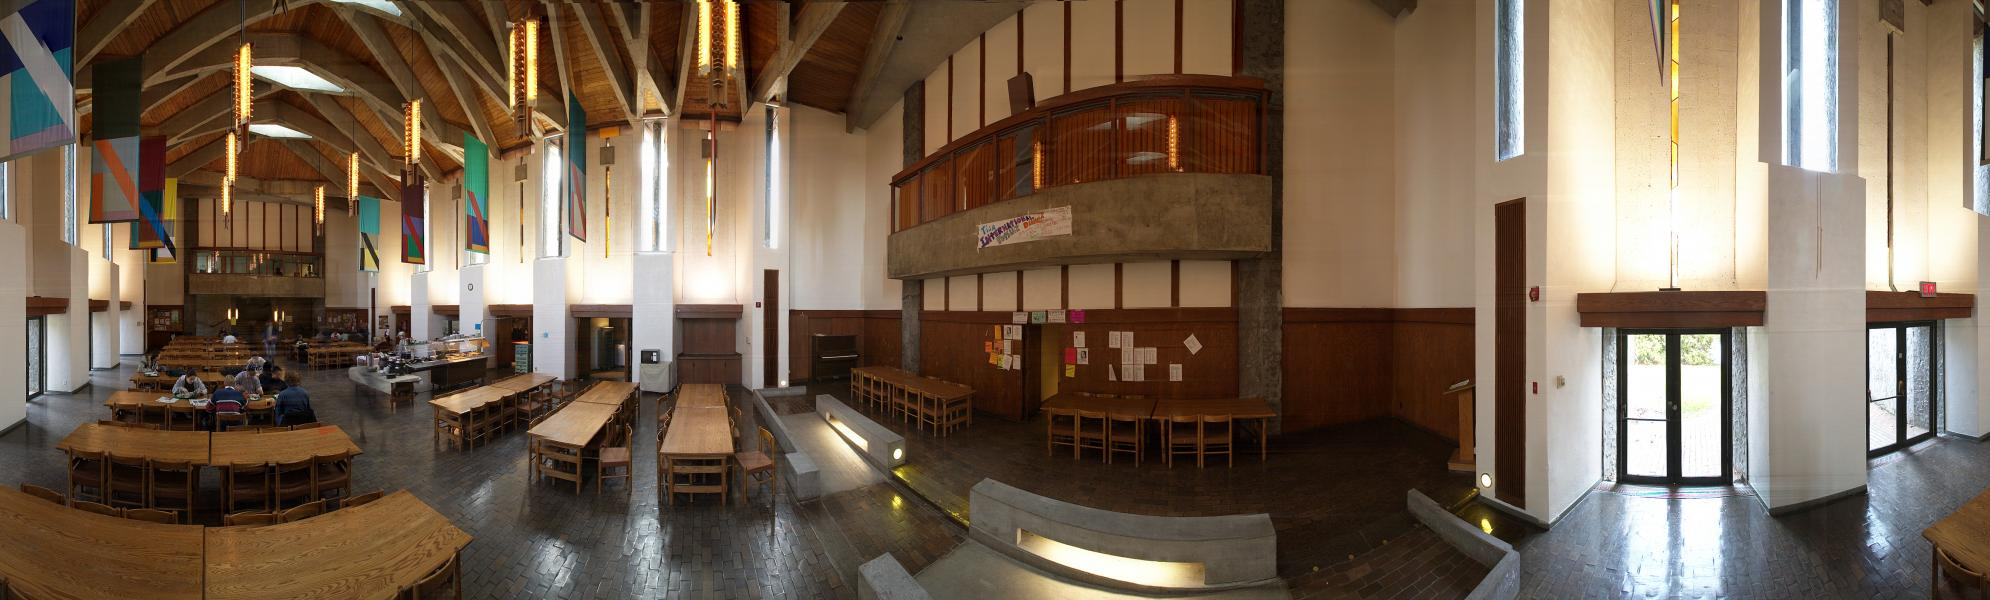 Panoramic photo of the Great Hall